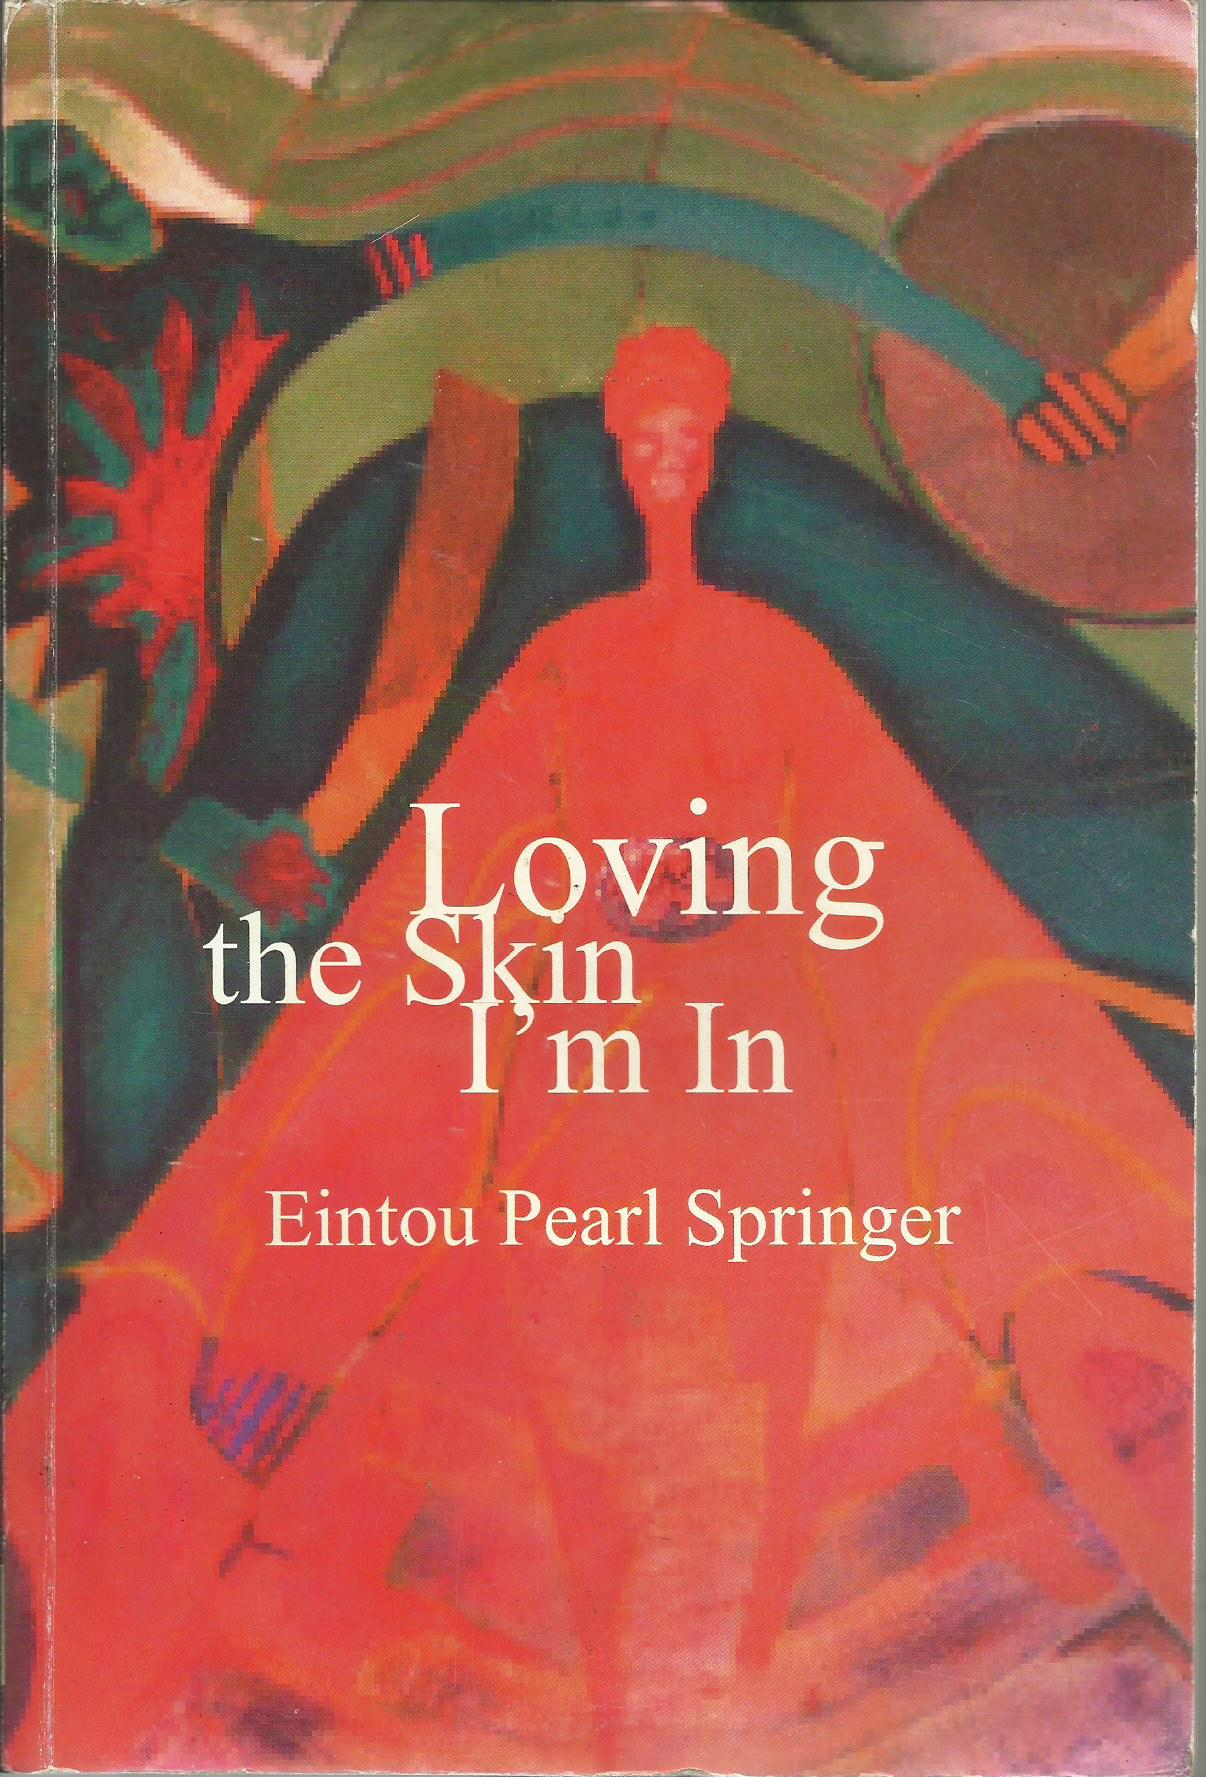 pearl_eintou_springer_book_cover_1.jpg